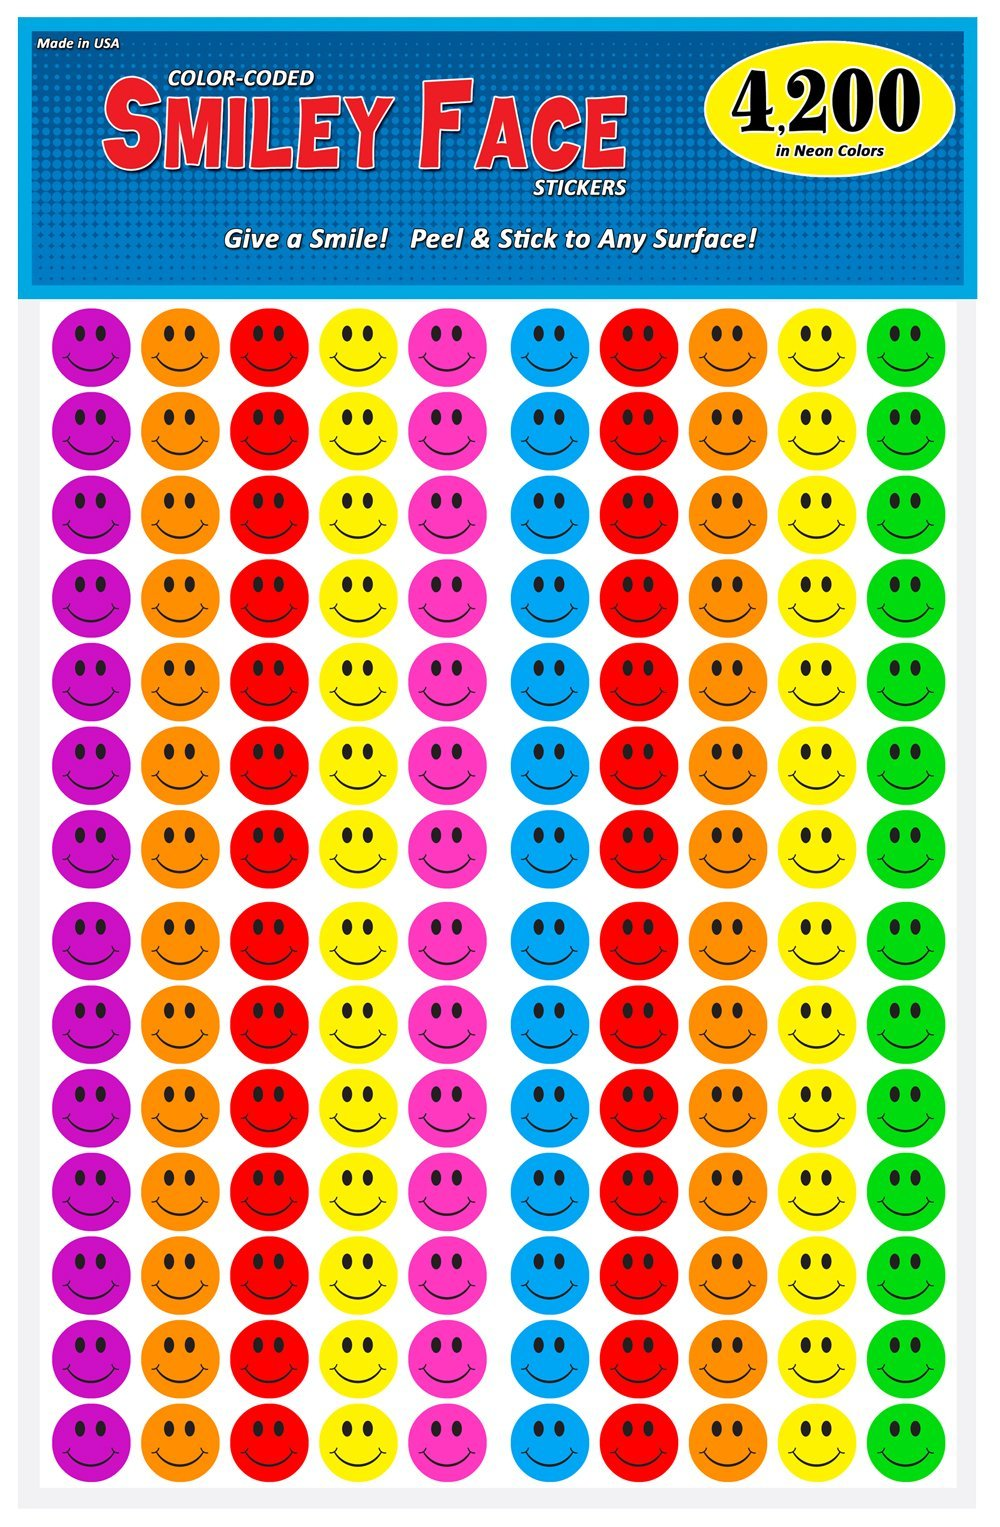 Pack of 4200, Happy Face Smiley Stickers, 3/4 inch Round Circles, 7 Bright Neon Colors, Great for Teachers